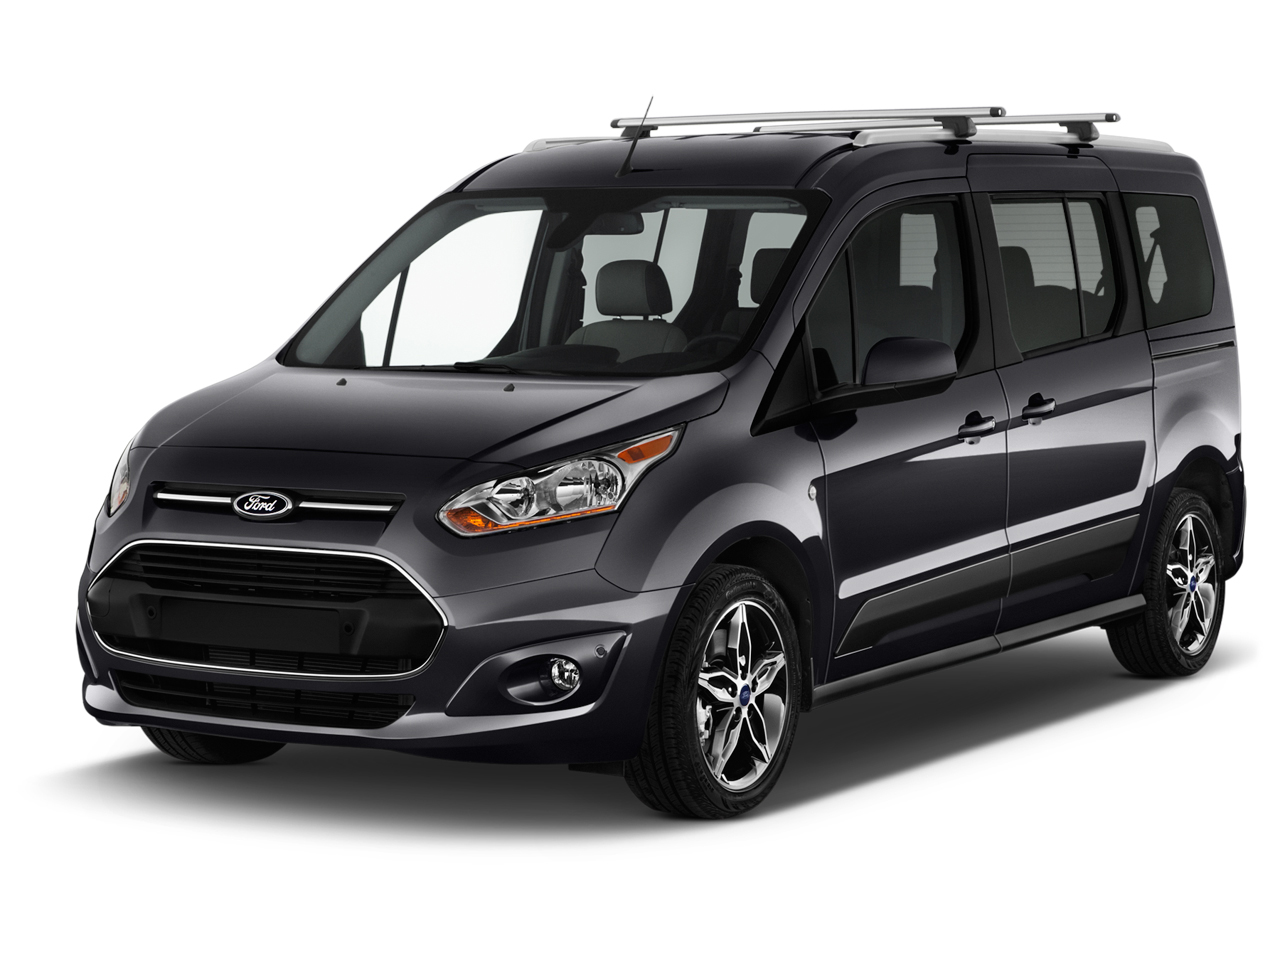 2016 ford transit connect wagon review ratings specs prices and photos the car connection. Black Bedroom Furniture Sets. Home Design Ideas